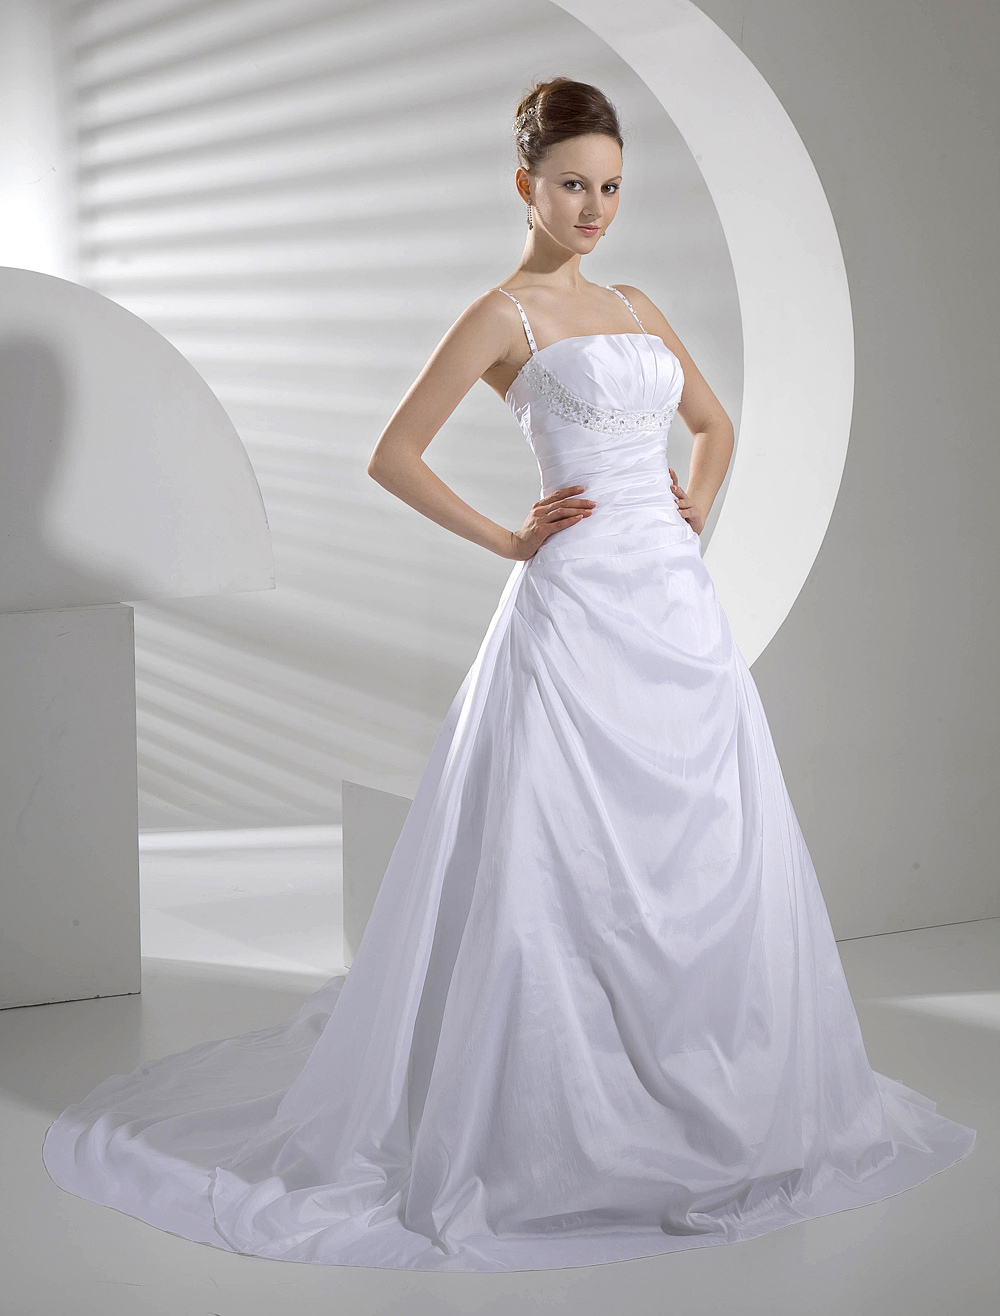 Wedding Dress 2018 A Line Spaghetti Straps Pleated Taffeta Backless Bridal Gowns With Train